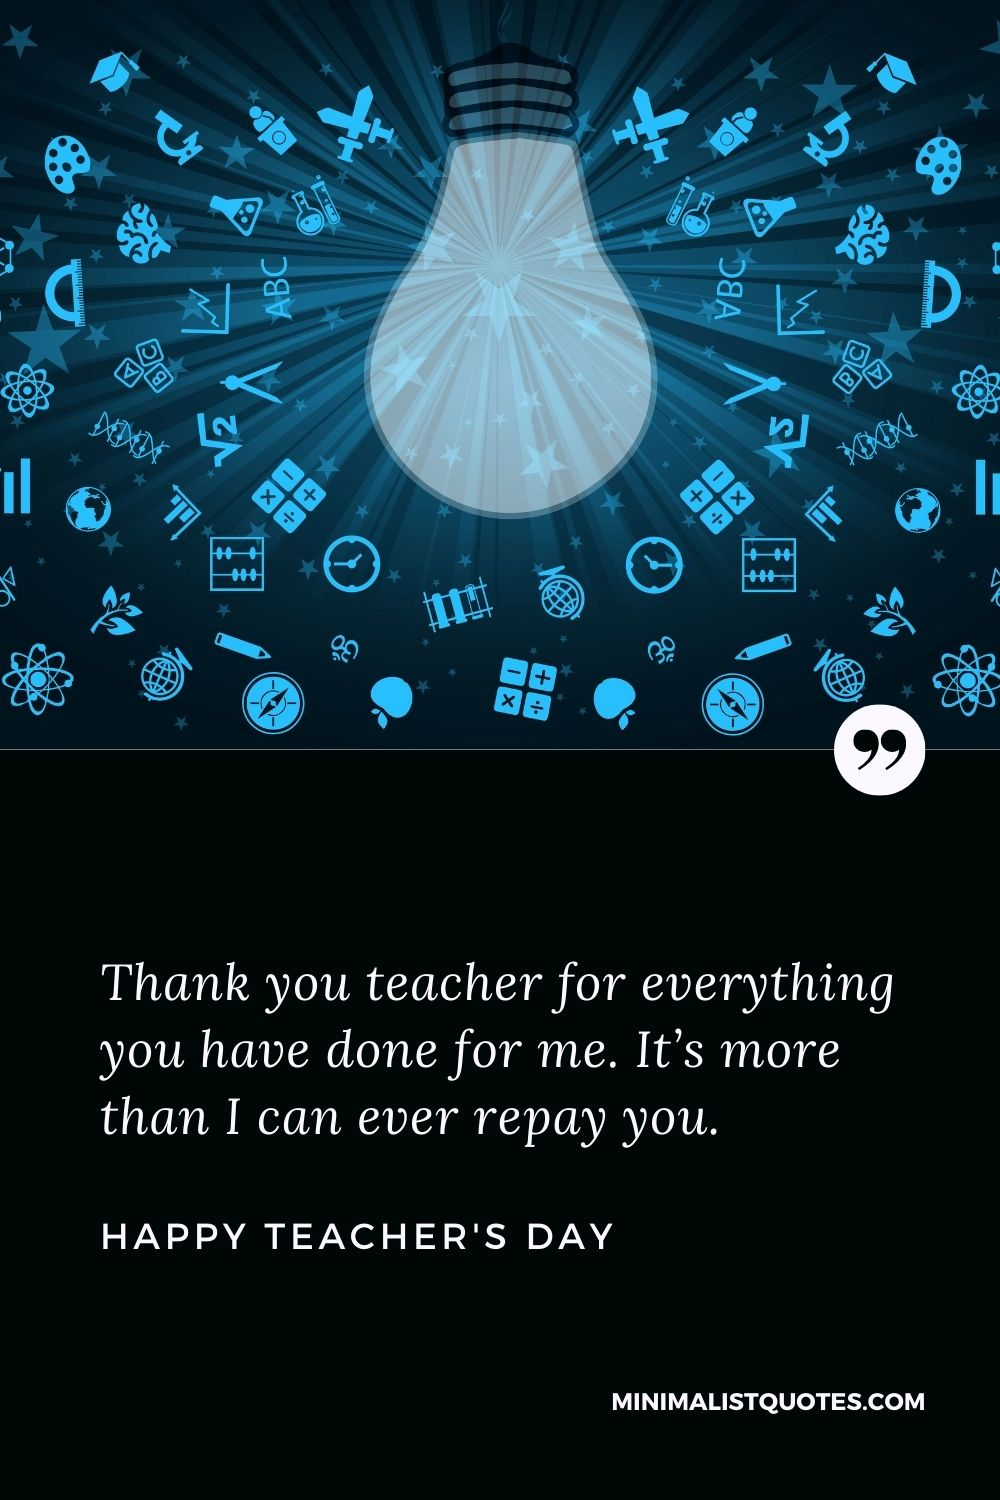 Teacher's Day wish, message & quote with HD image: Thank you teacher for everything you havedone for me. It's more than I can ever repay you. Happy Teacher's Day!